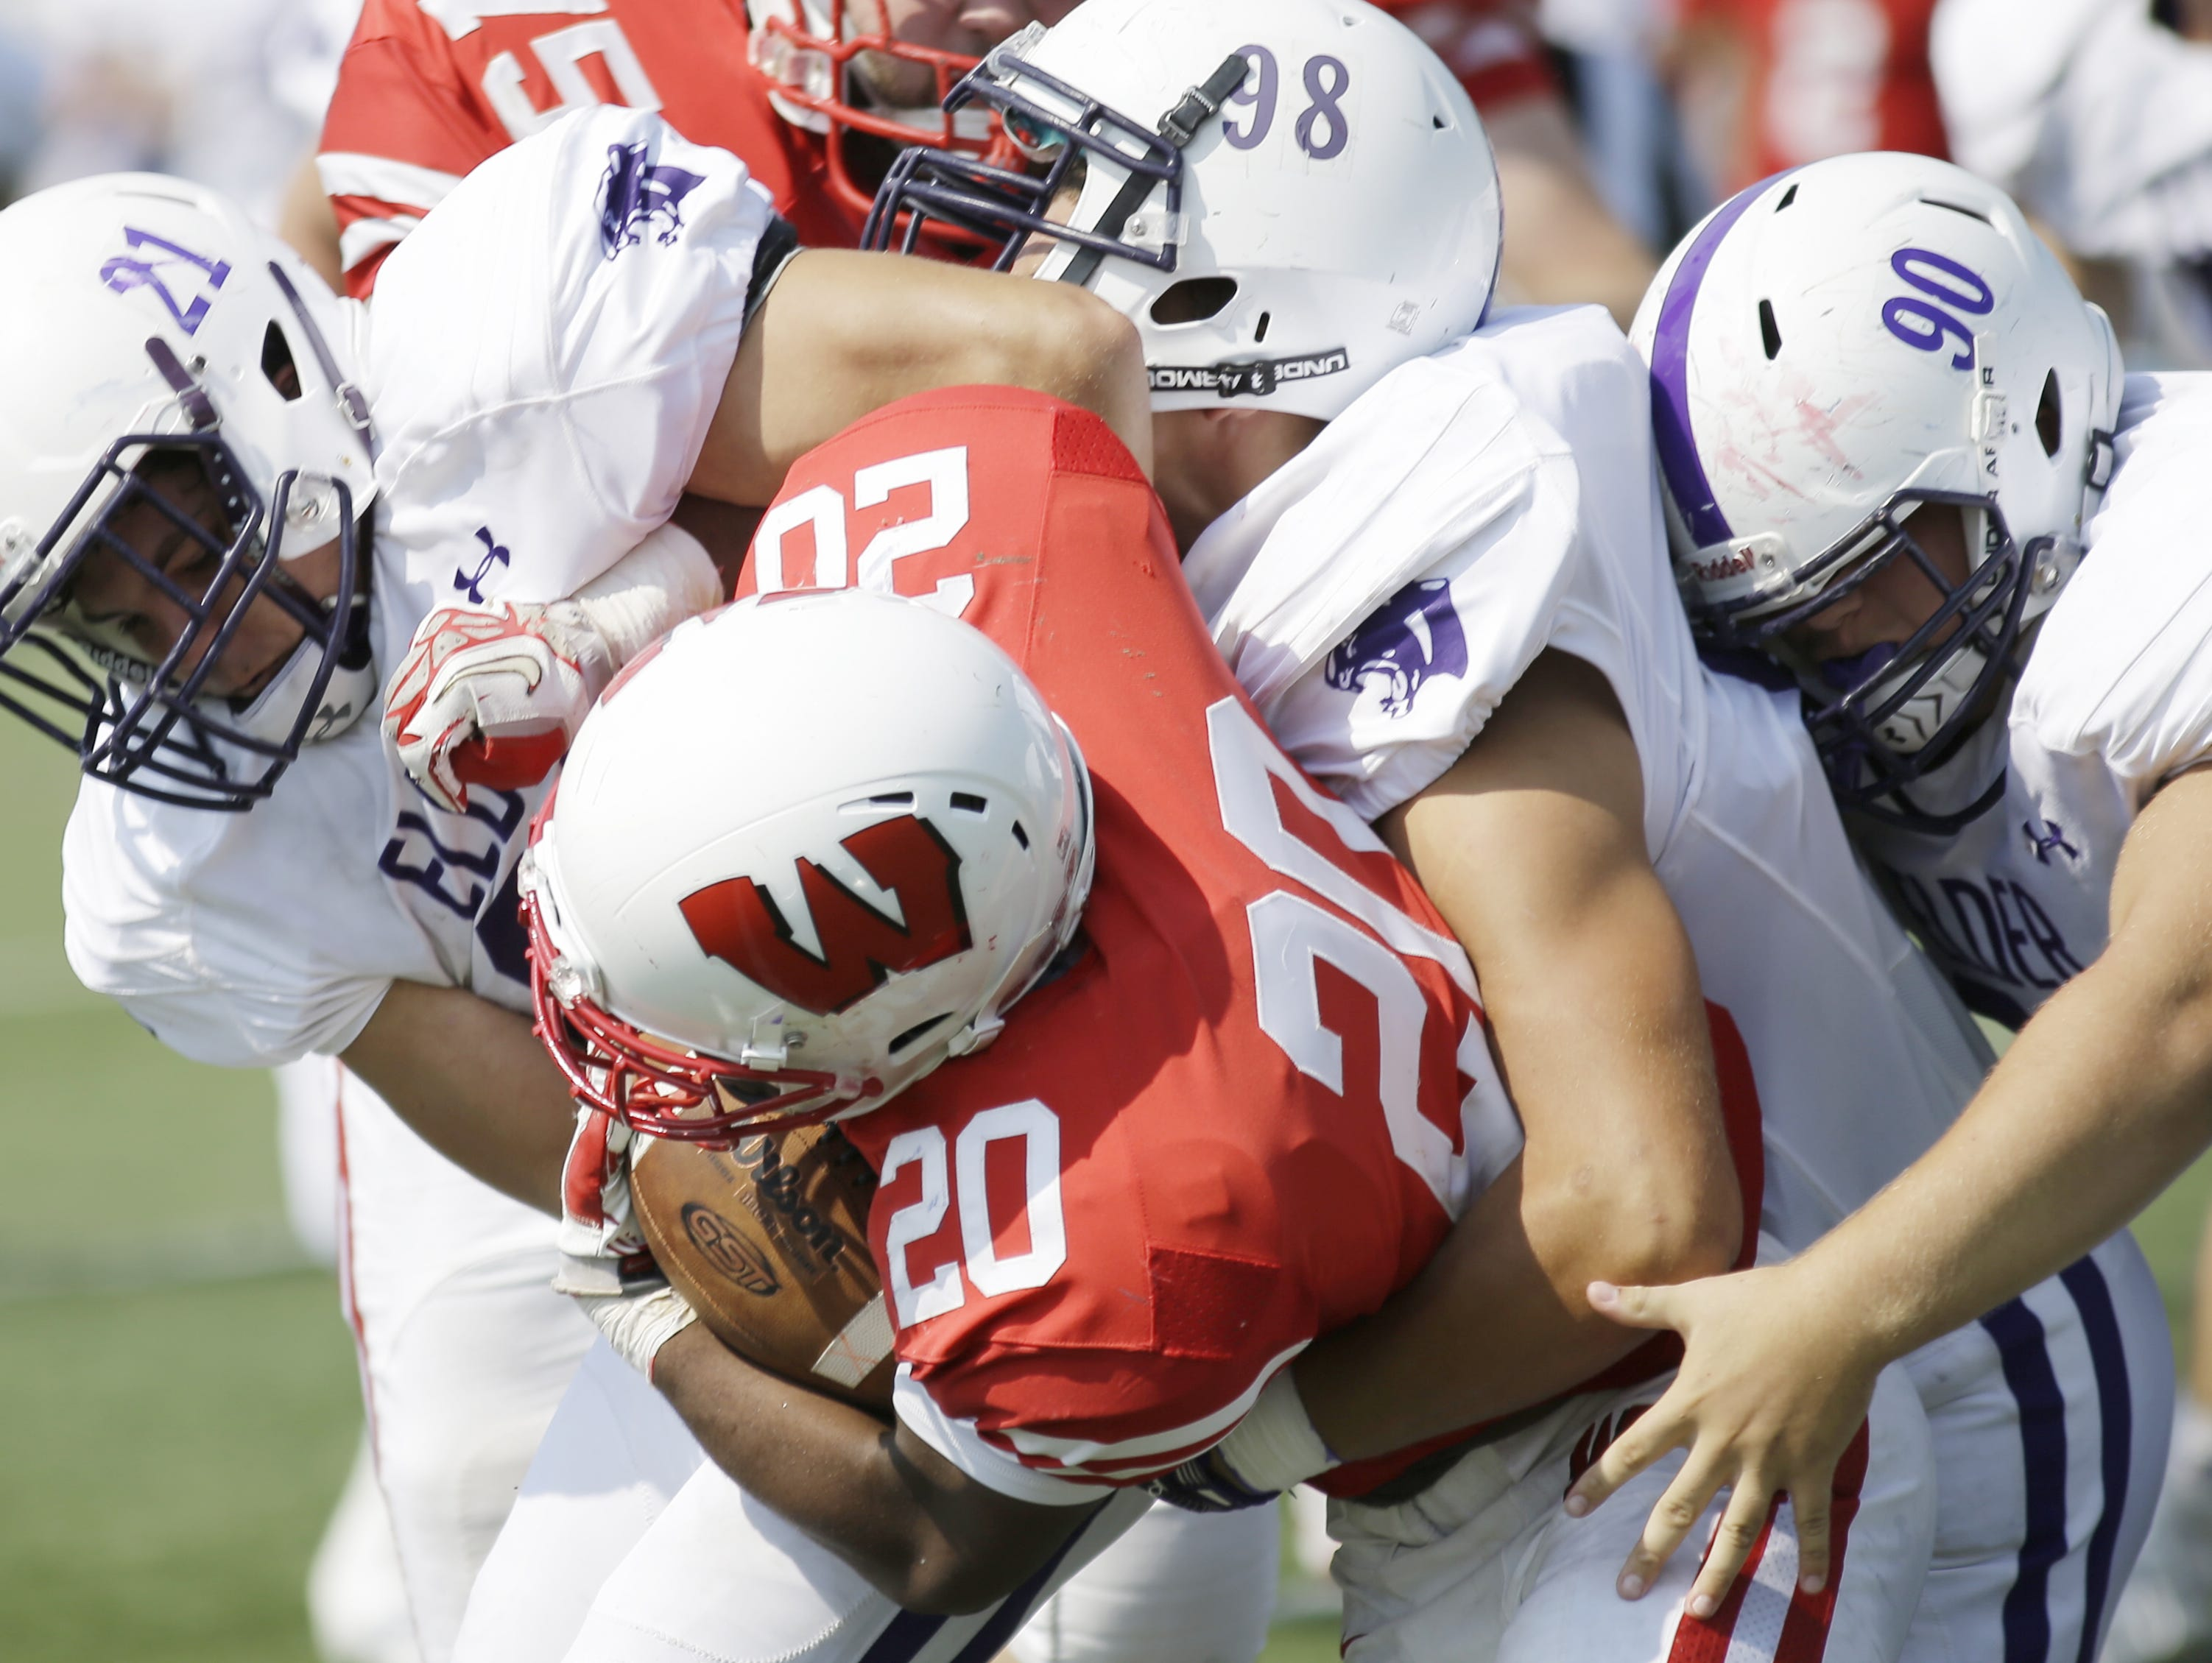 Lakota West running back Danny Otakasongo is wrapped up by several Elder defenders during the Firebirds' 34-17 loss on Saturday.